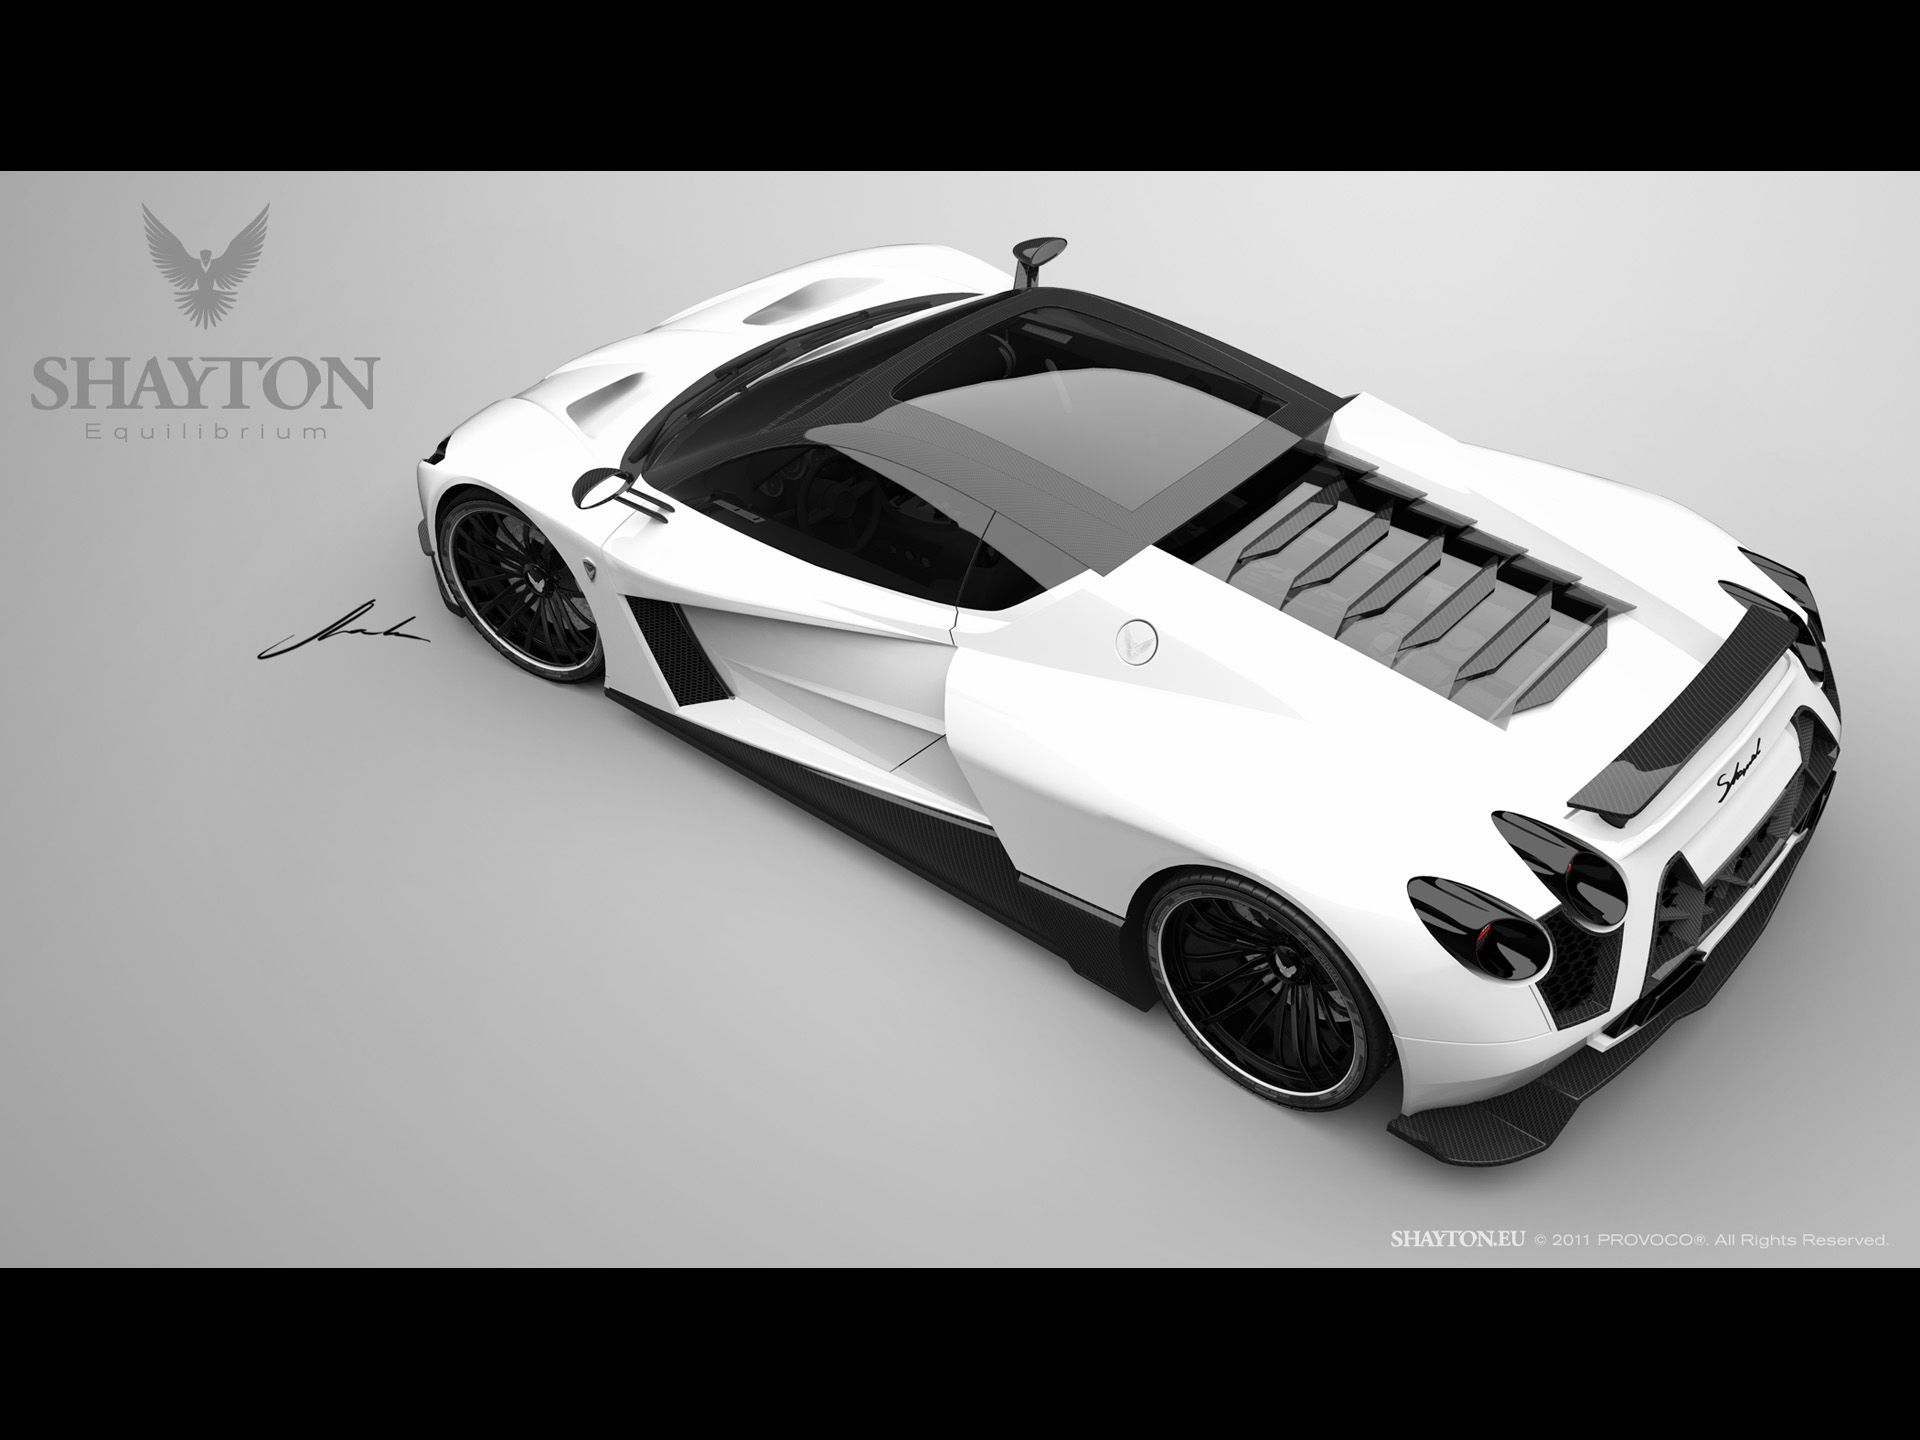 2011 Shayton Equilibrium Renderings Top Rear And Side